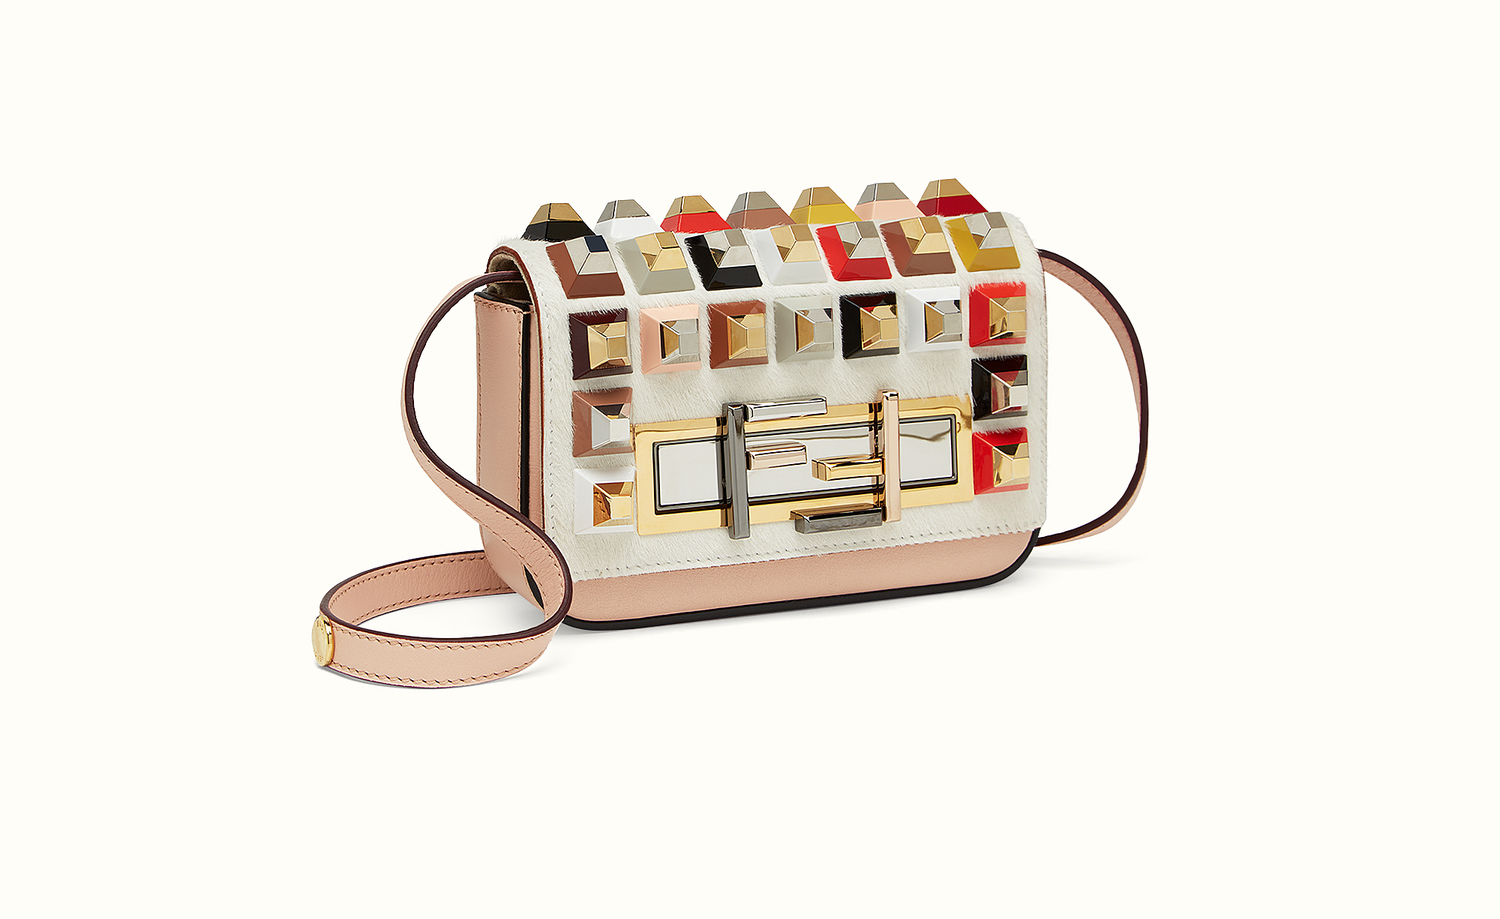 14 Fendi fall winter 2015 2016 wishlist wish list behindmyglasses.com giulia de martin